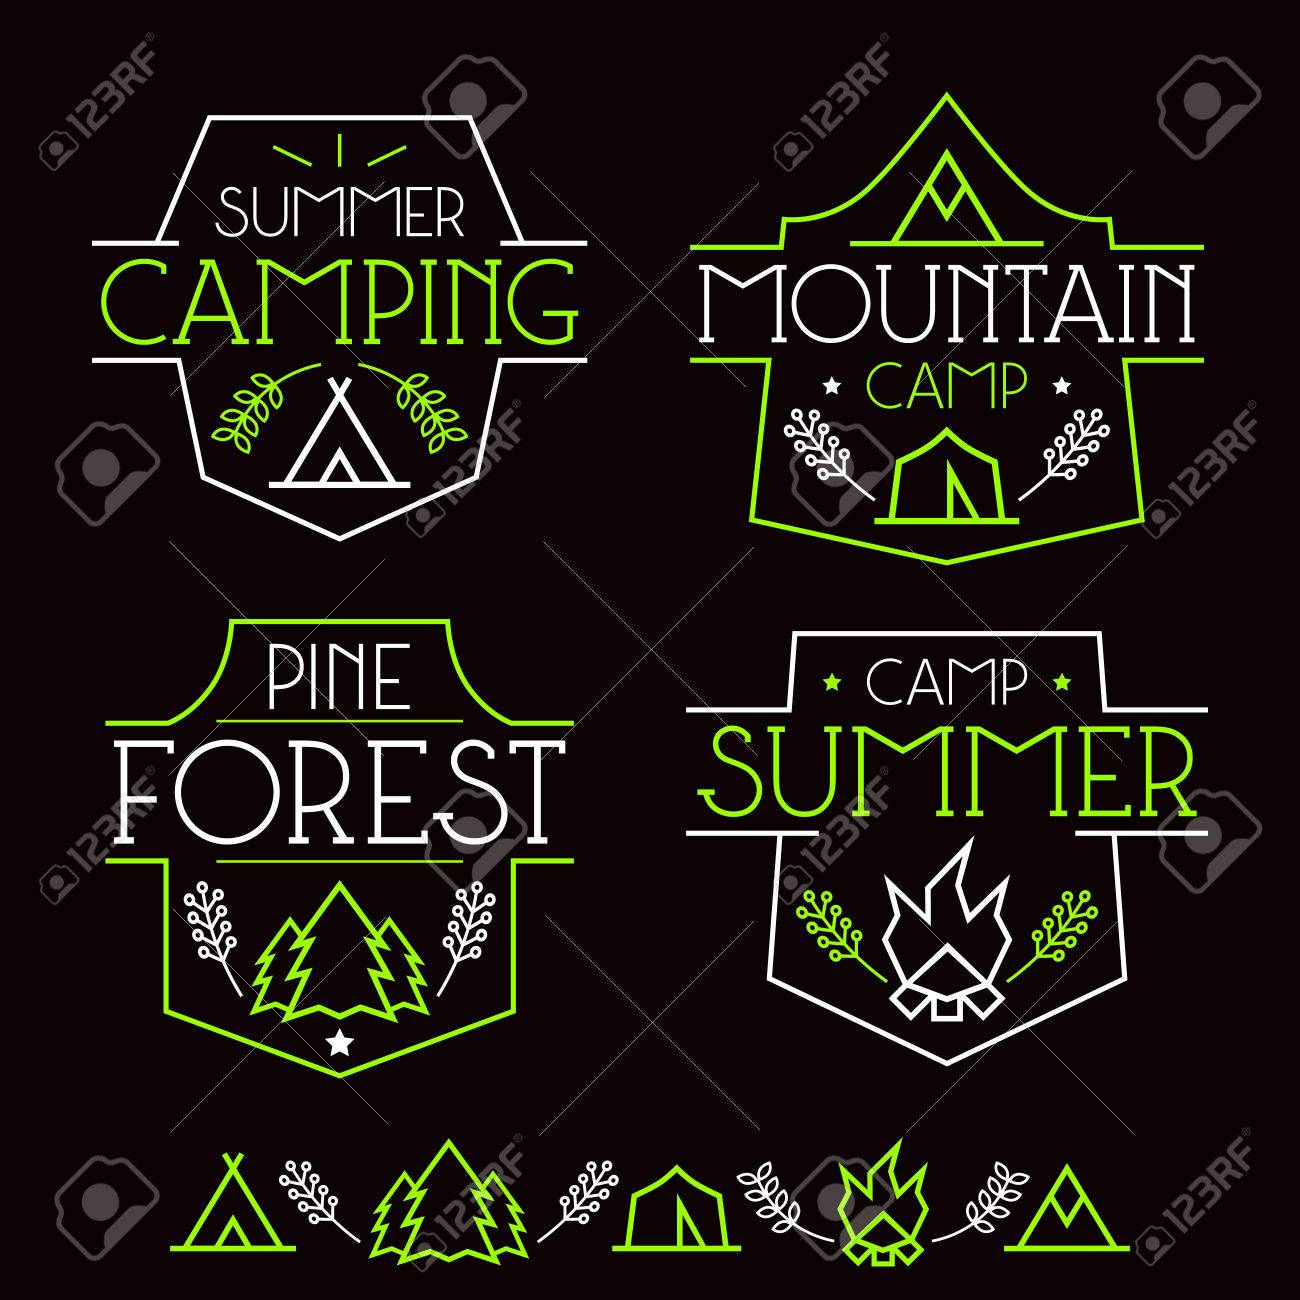 Design t shirt neon colors - Design T Shirt Neon Colors Neon Colors Print On A Black Background Camping Badges And